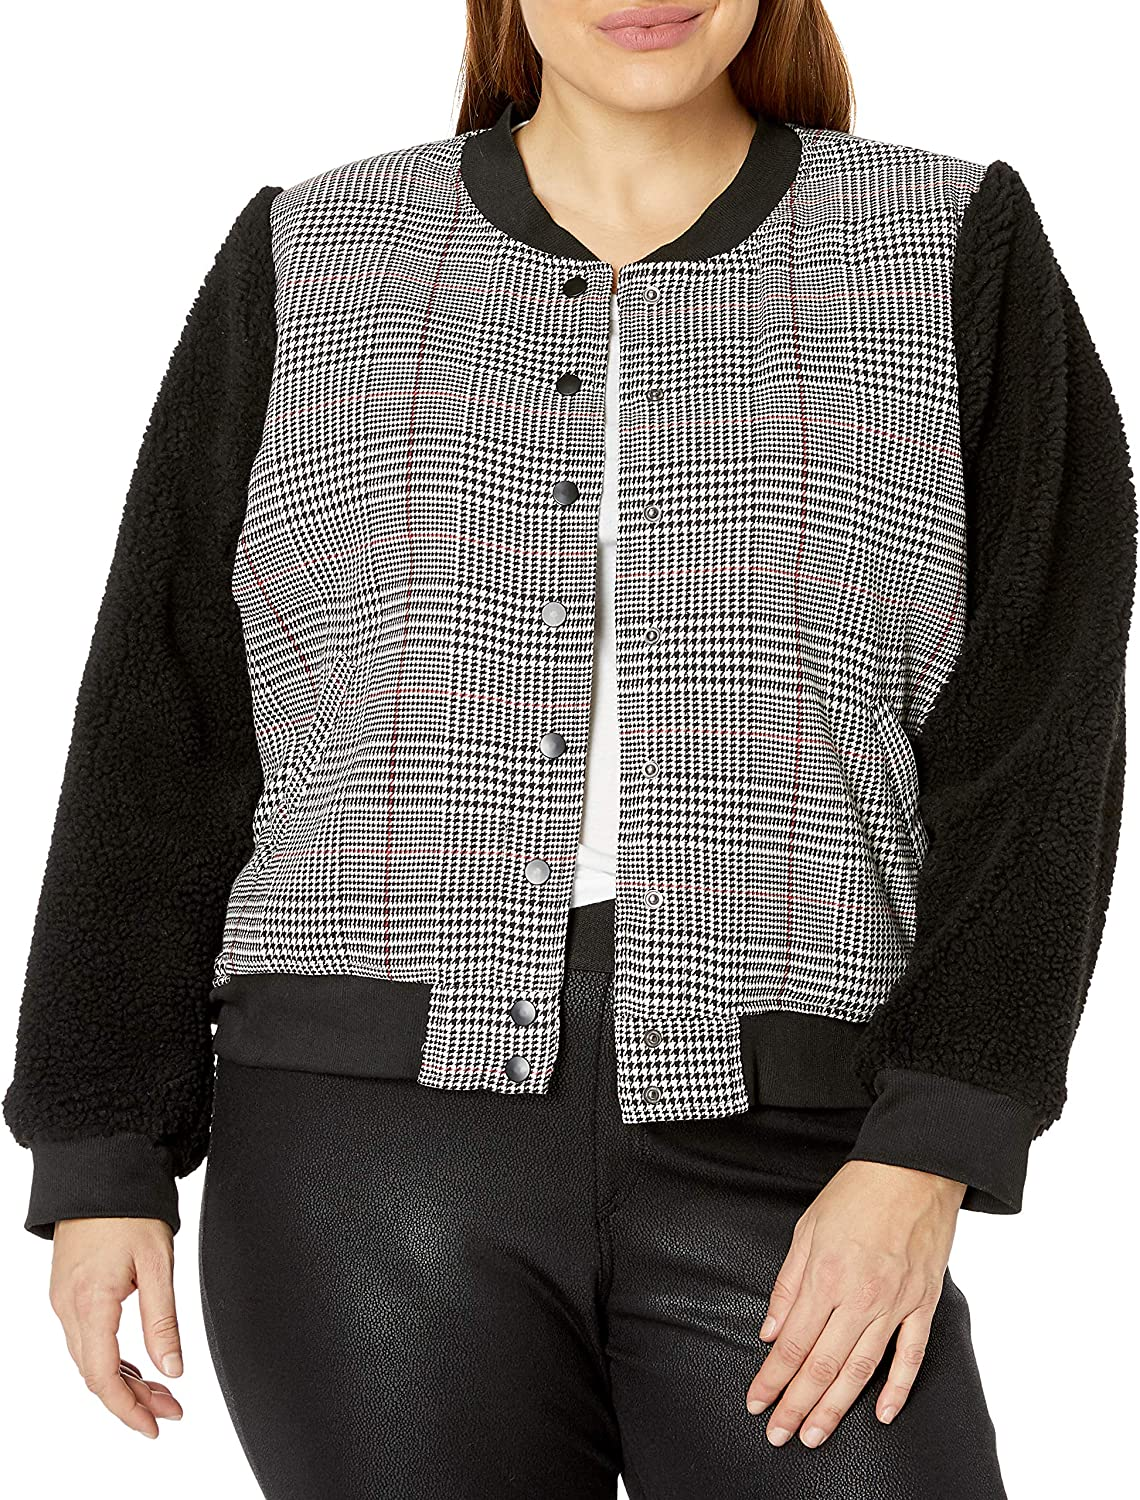 City Chic Women's Apparel Women's Buttoned Casual Jacket with Contrast Sleeve